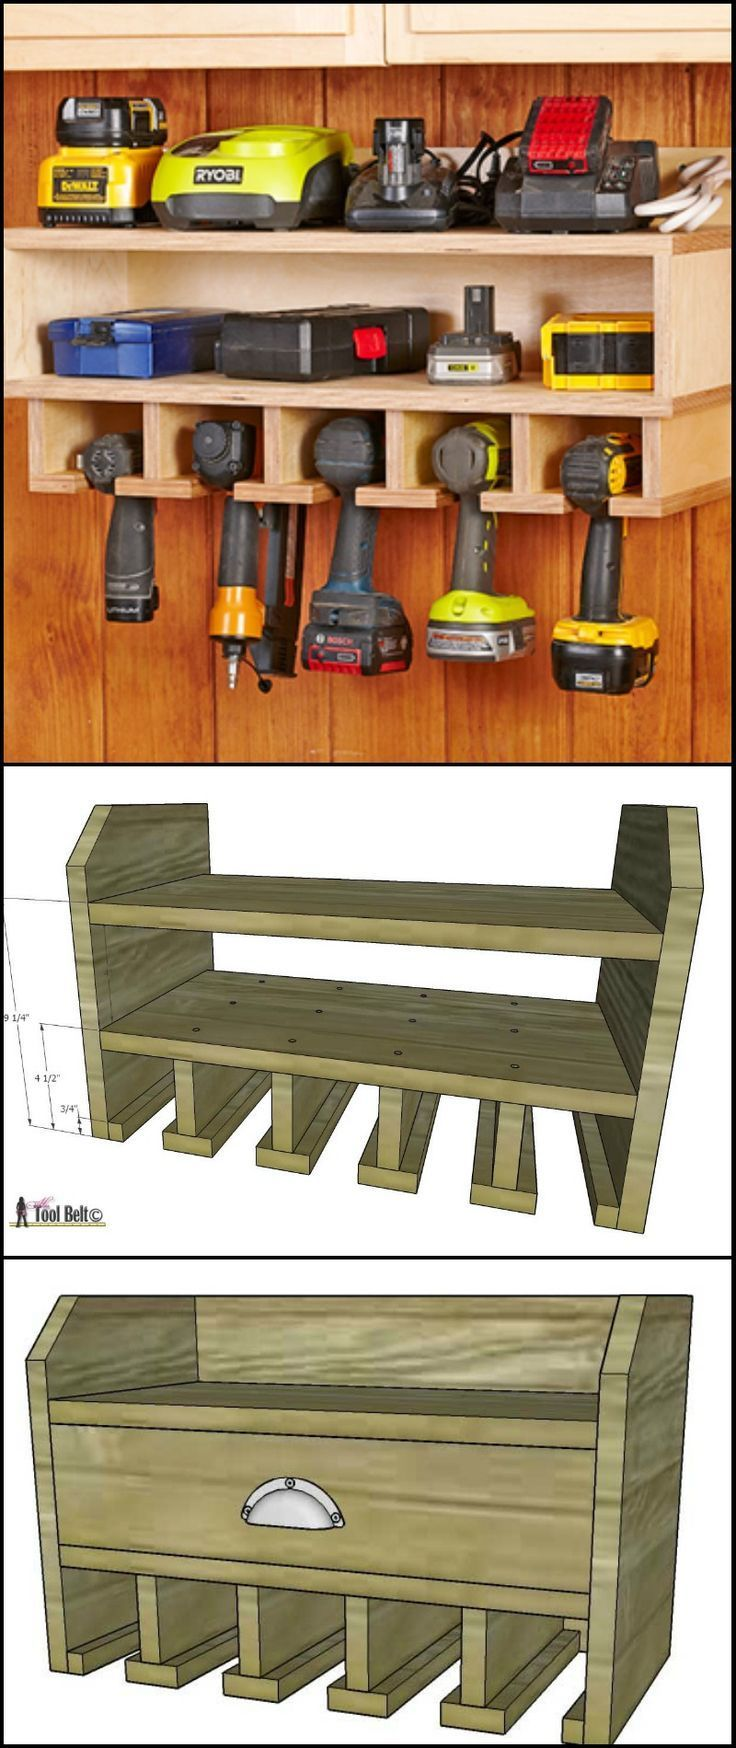 DIY Cordless Drill Storage And Charging Station diyprojects.ideas... This wall-mounted cordless drill storage will help keep the entire workshop looking clean and organized. It also serves as the charging station so that items related to your cordless tools are always all in one place! If you don't have any wall space available anymore, you can incorporate this idea into an existing furniture/storage in your workshop…